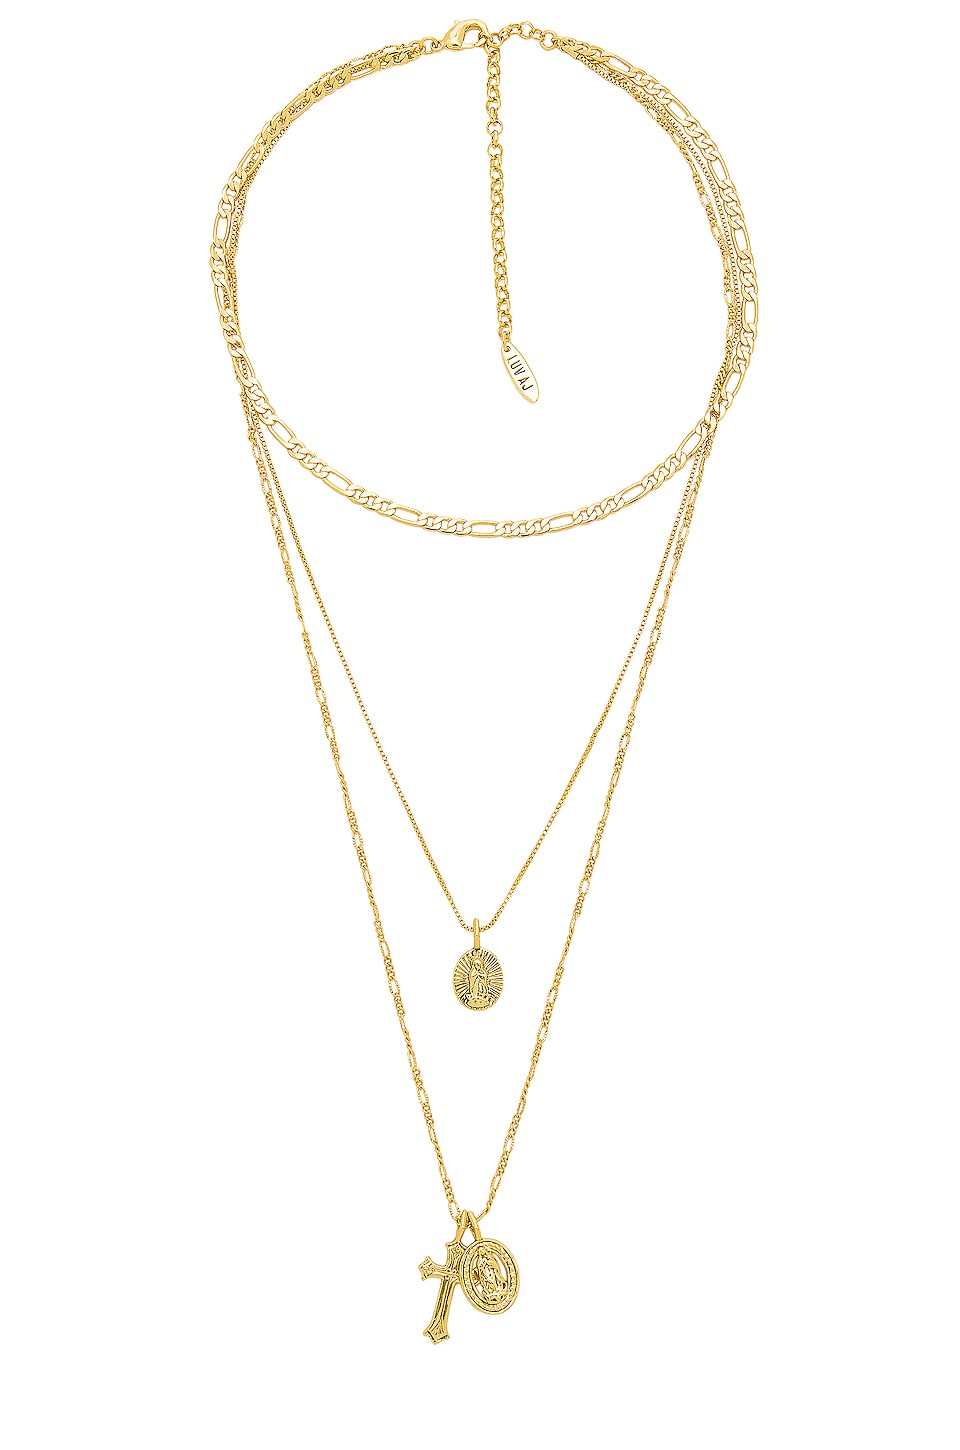 Luv AJ x SABO LUXE The Isidore Cross Charm Necklace in Antique Gold